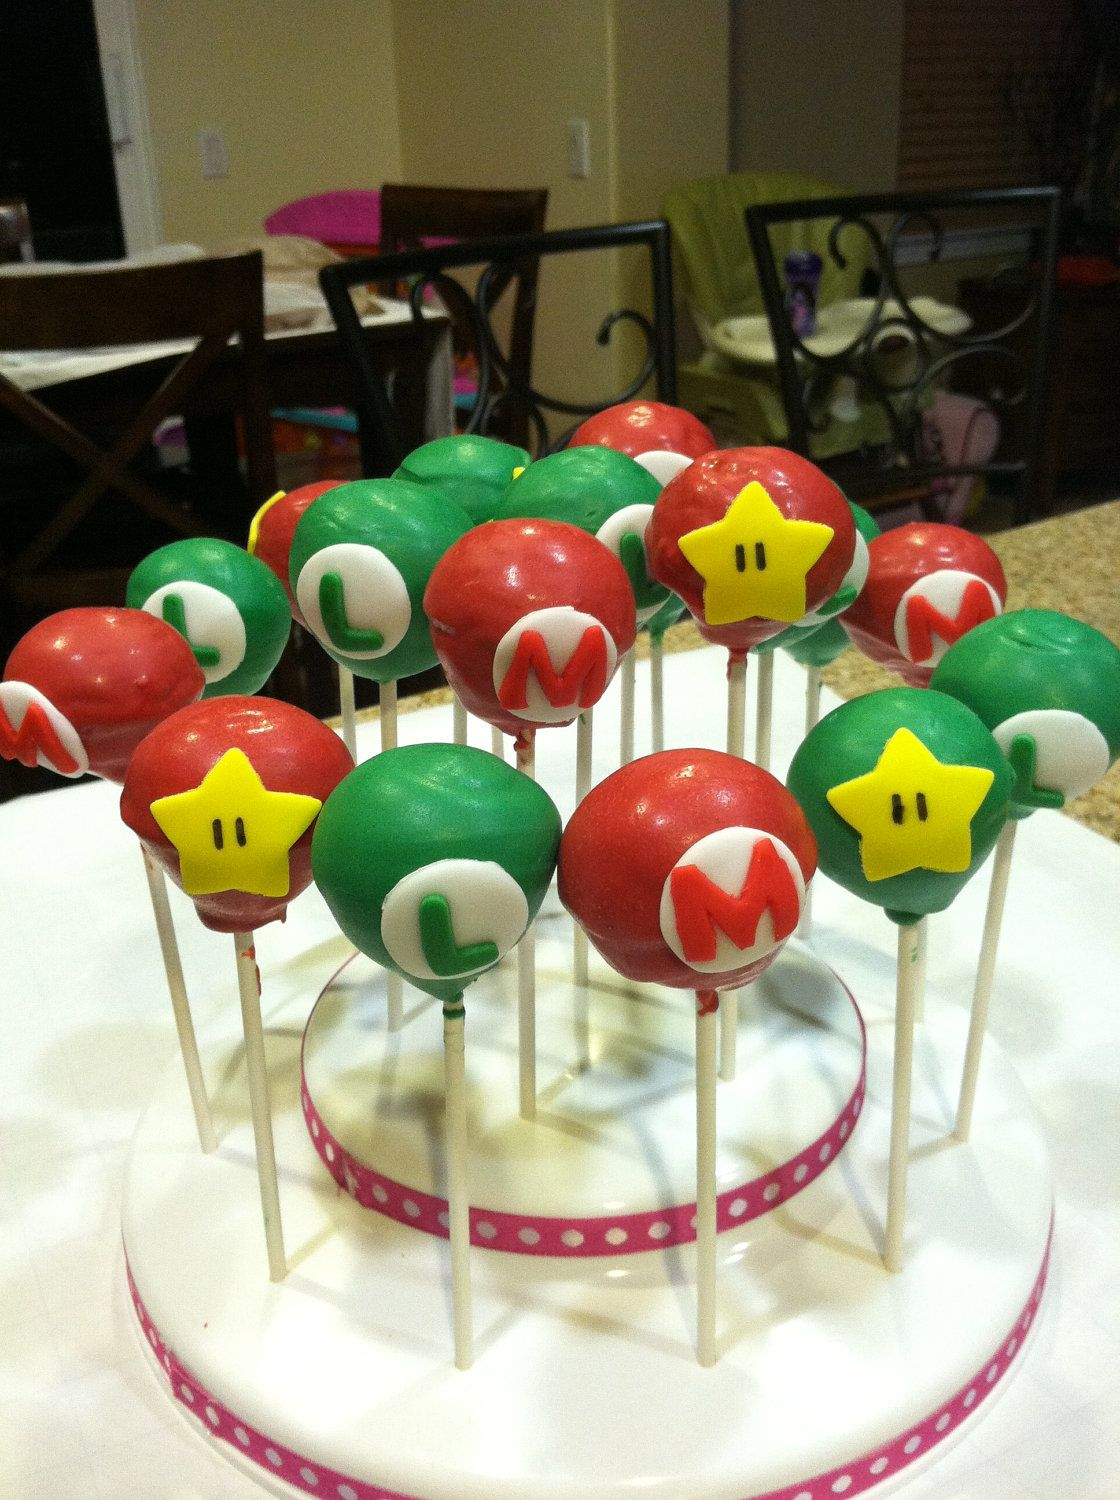 Nice Simple Way To Do Mario Cake Pops Just The Icons On Round